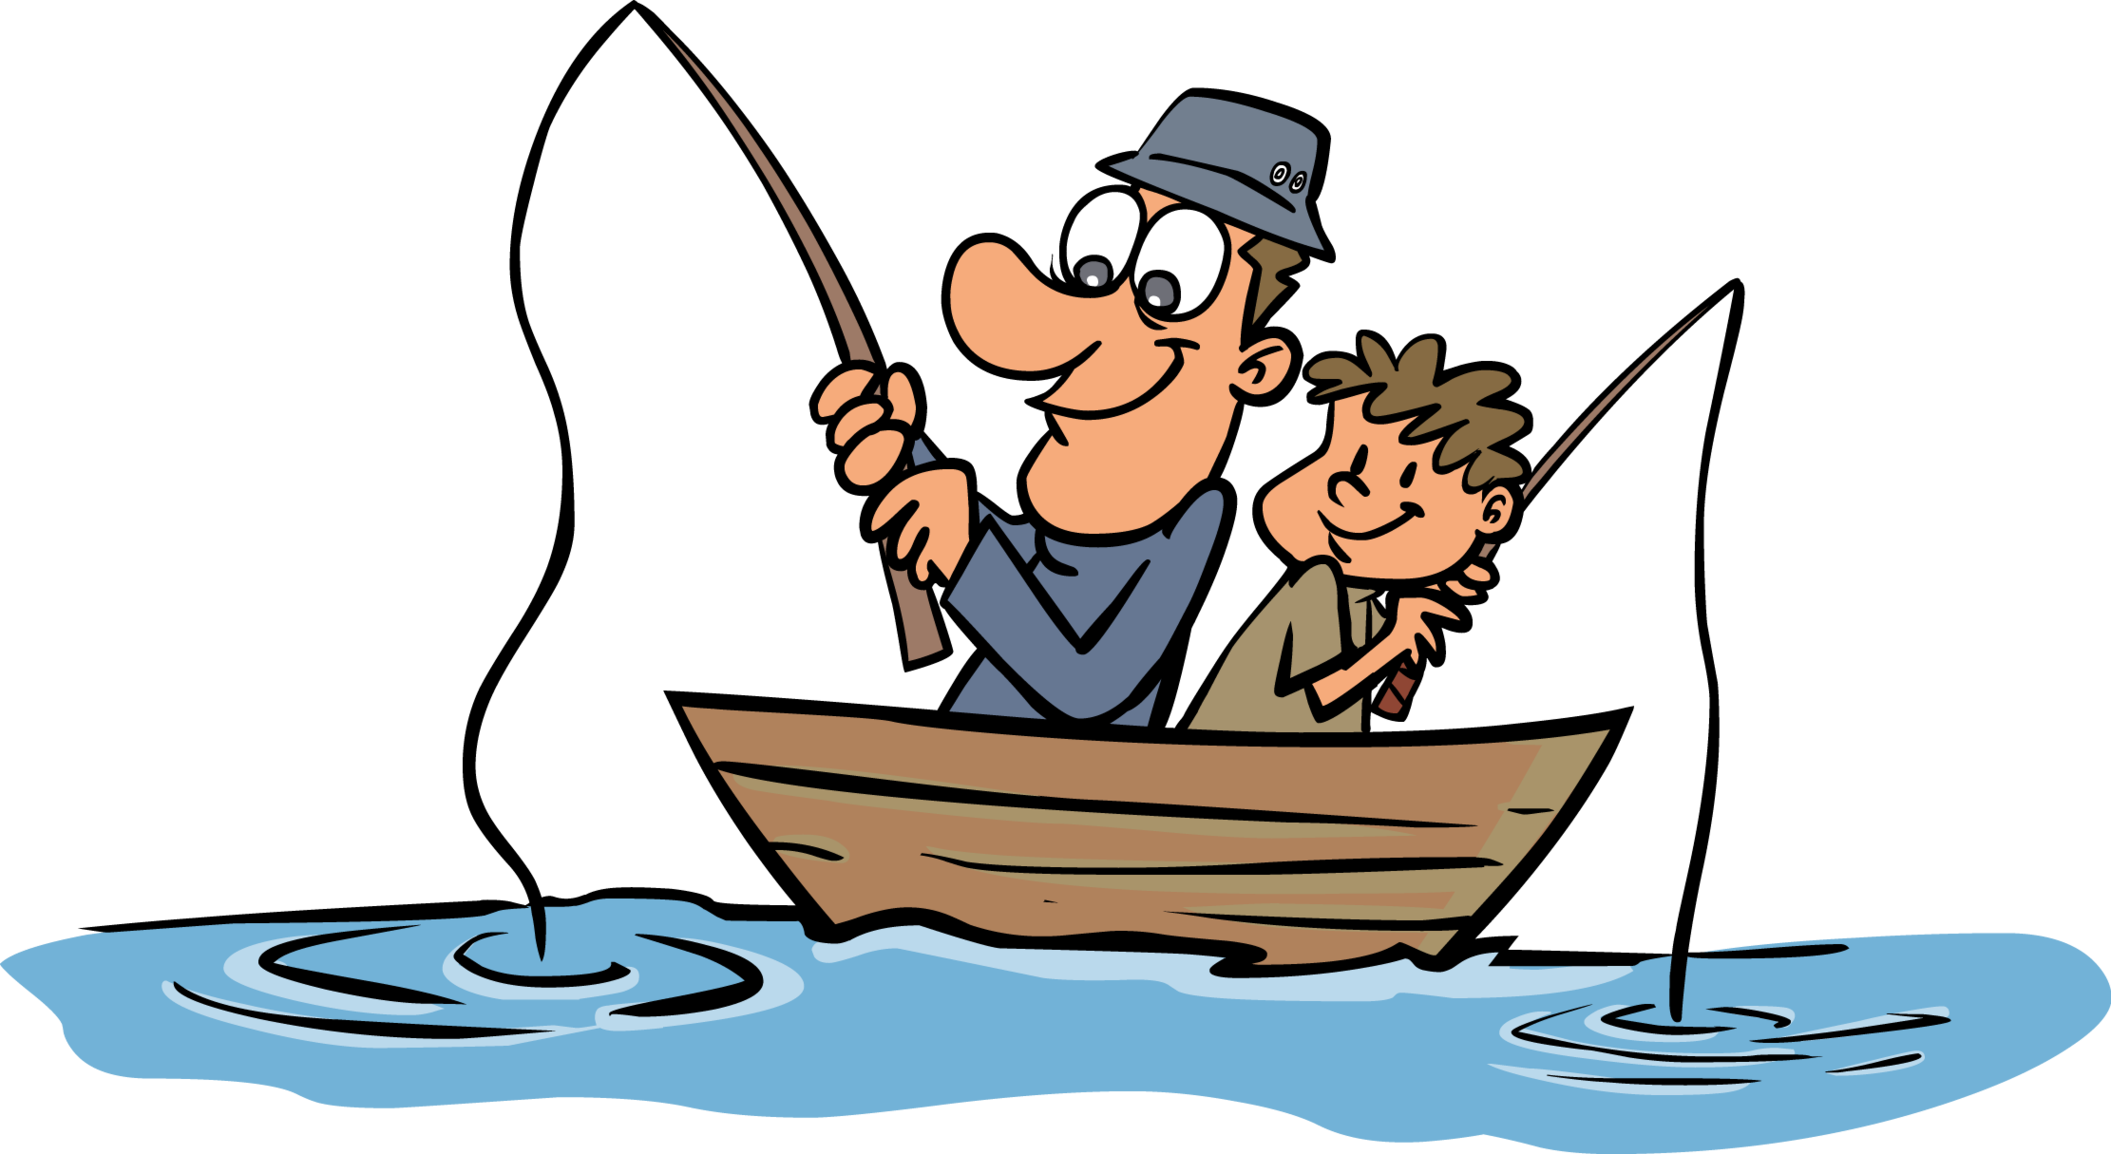 Fisherman clipart go fish #4